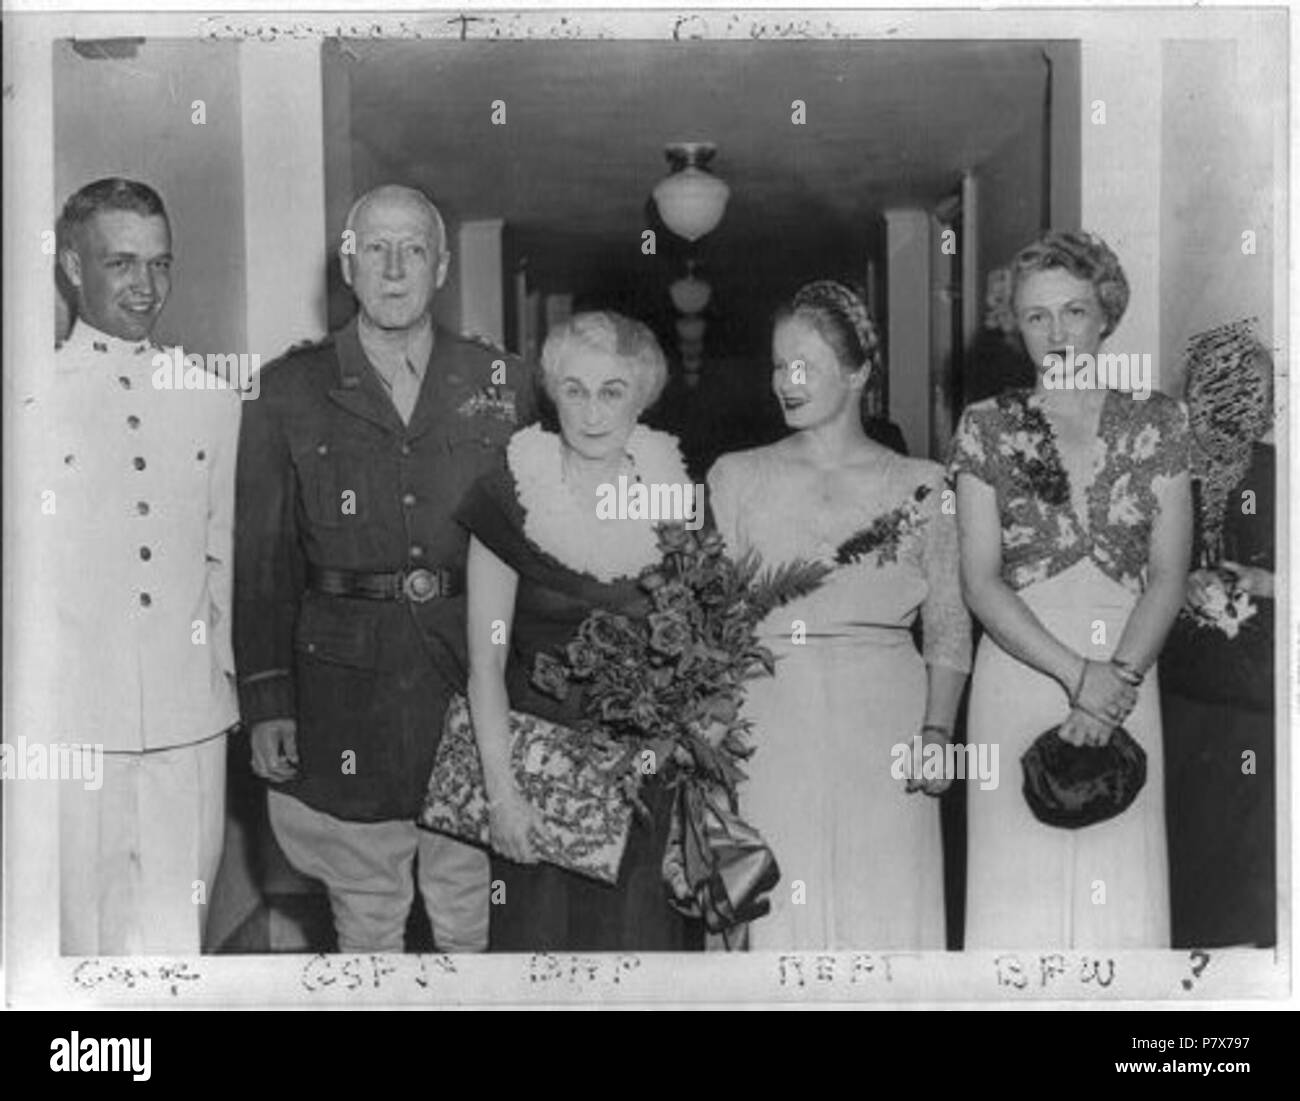 Beatrice Smith Stock Photos Images Alamy 3 Ivory 37 English George Patton With Wife Children S Iii